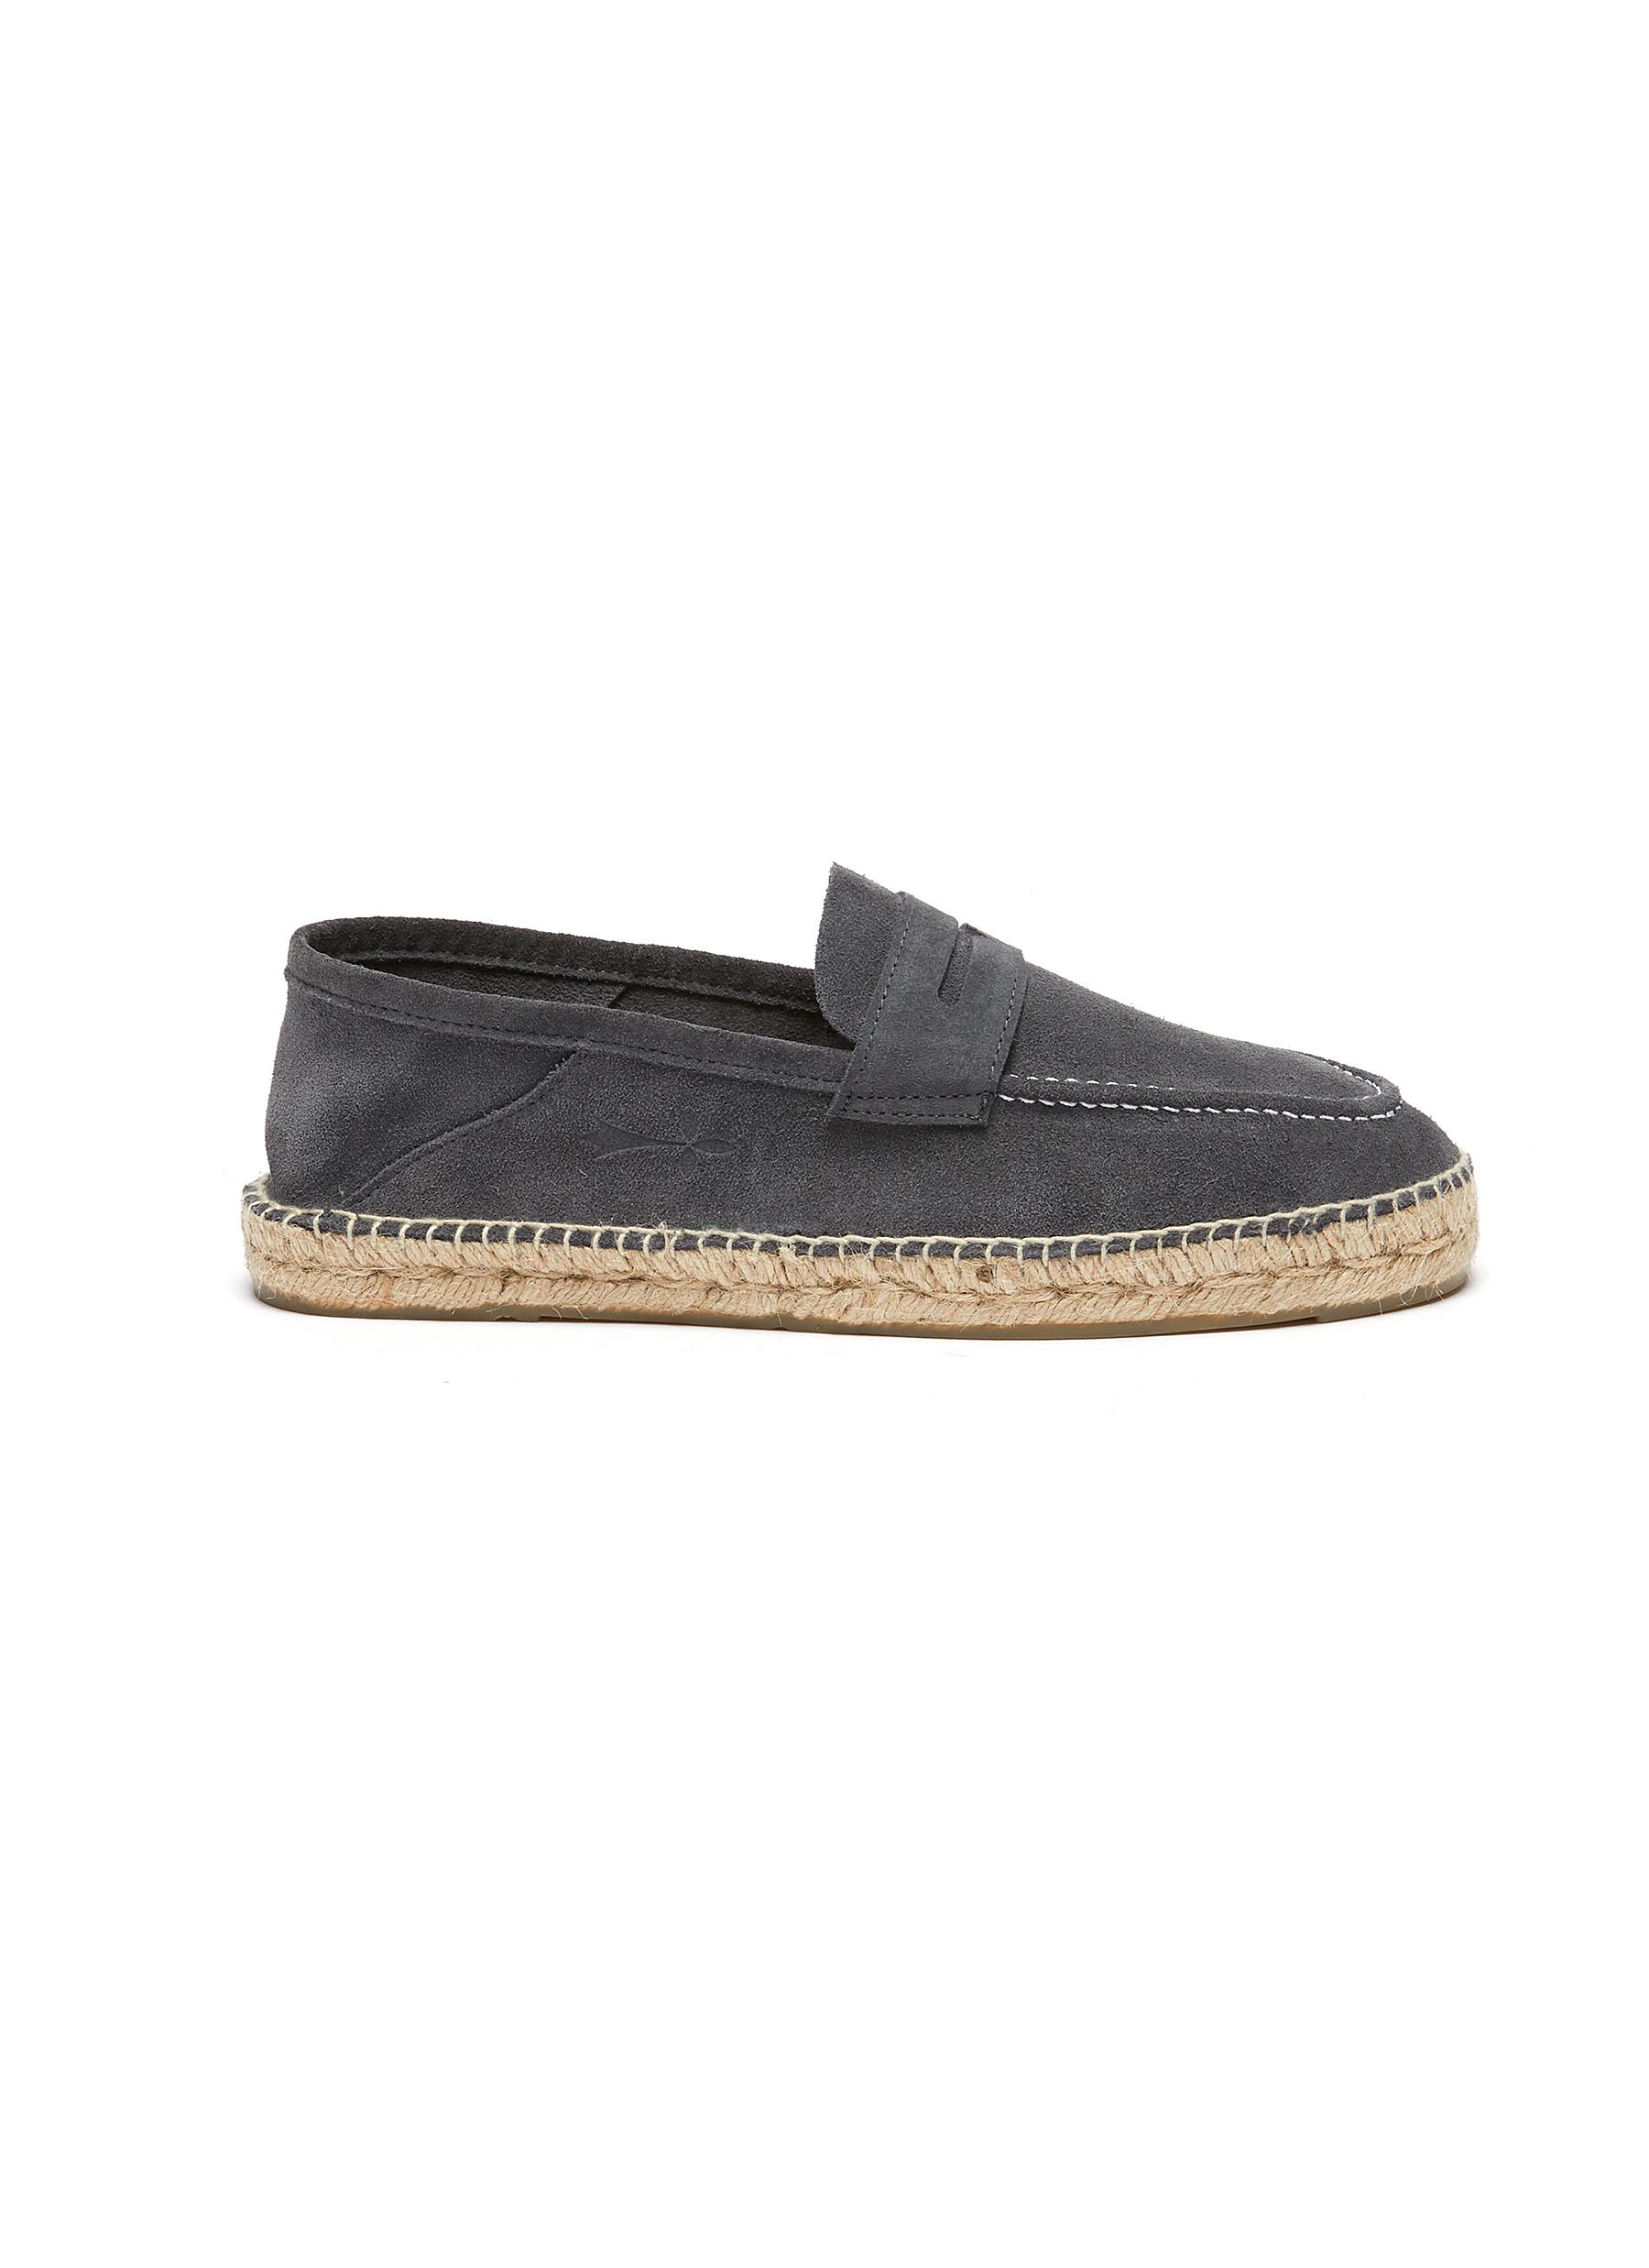 'Hamptons' Slip-on Canvas Espadrille Suede Penny Loafers